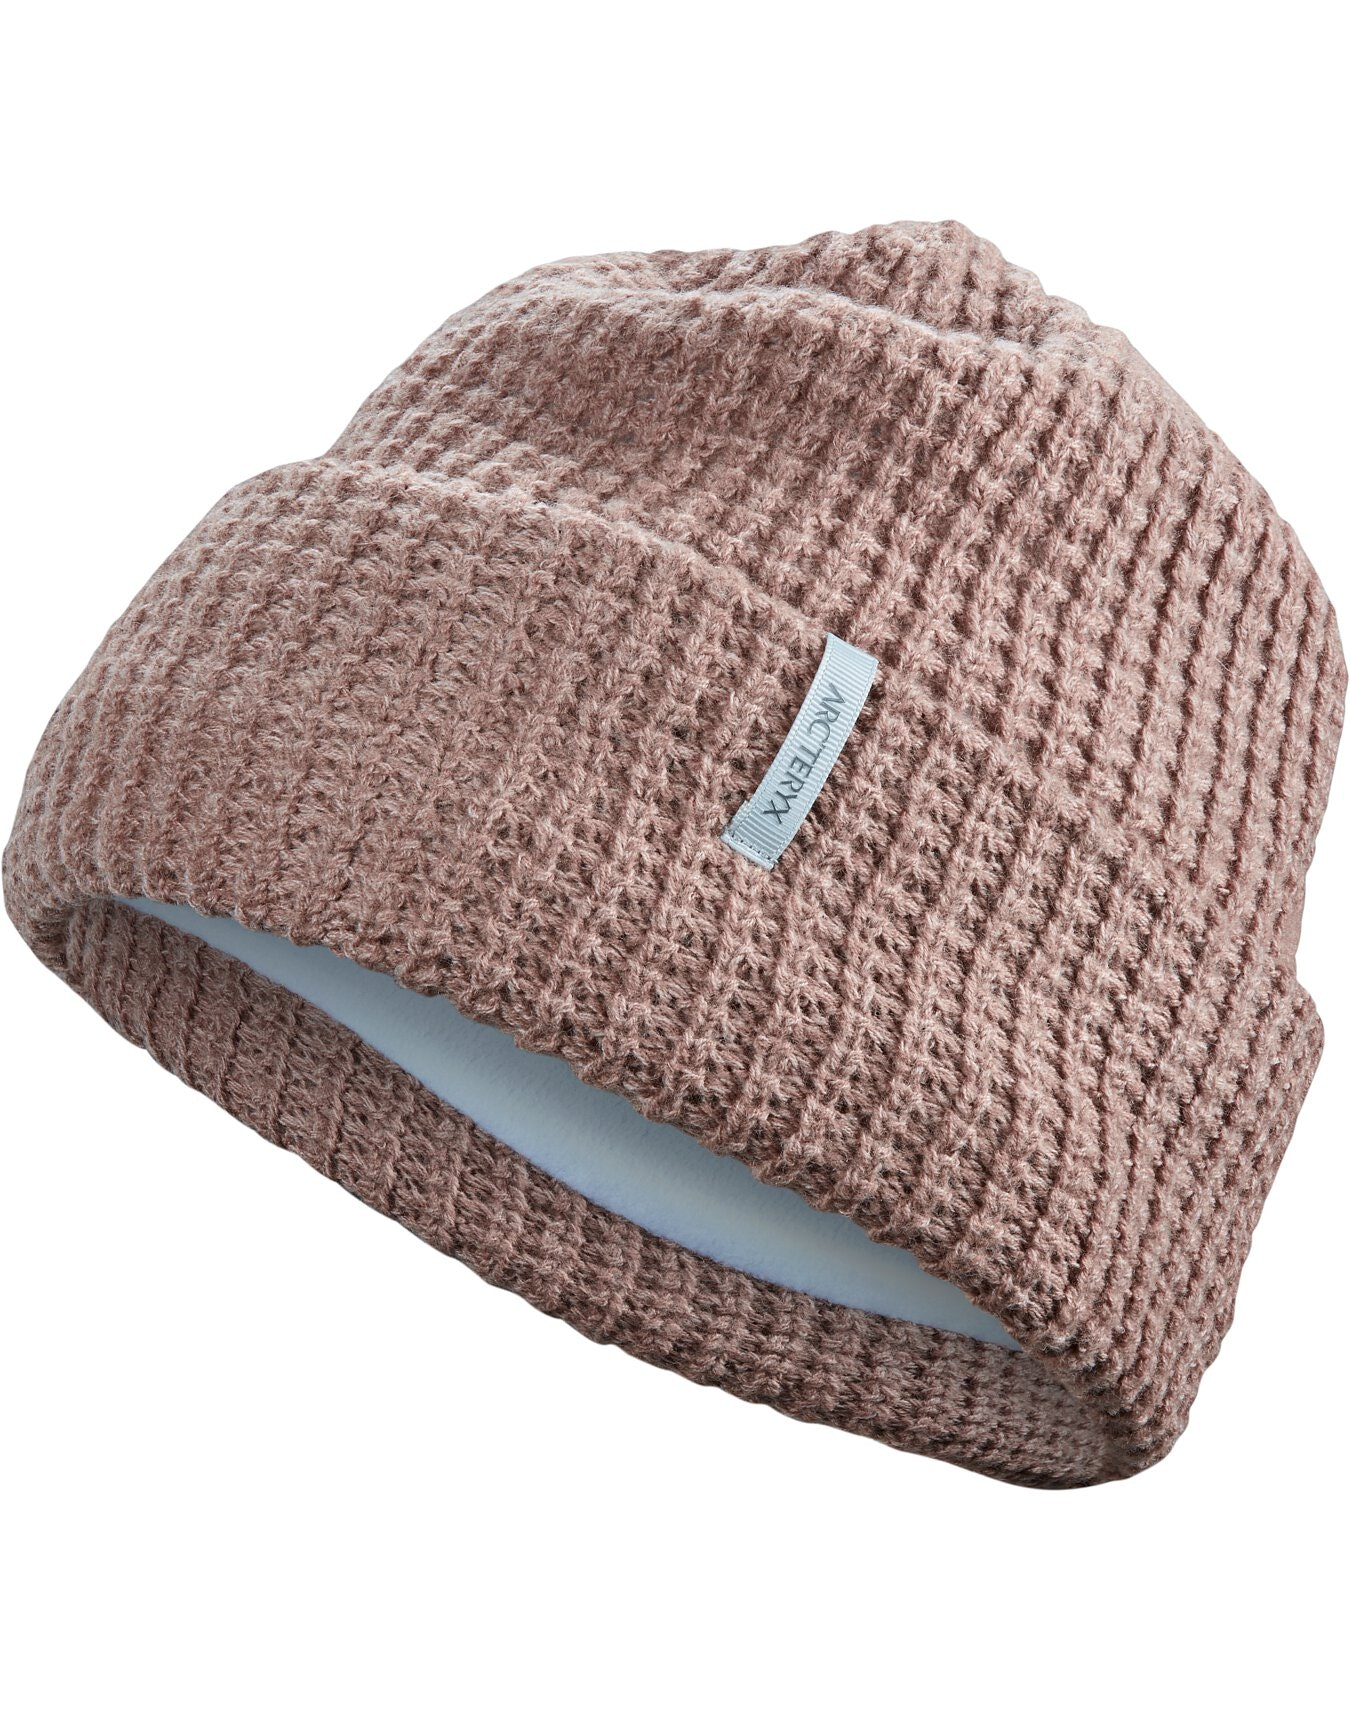 Chunky Knit Toque Jute Heather